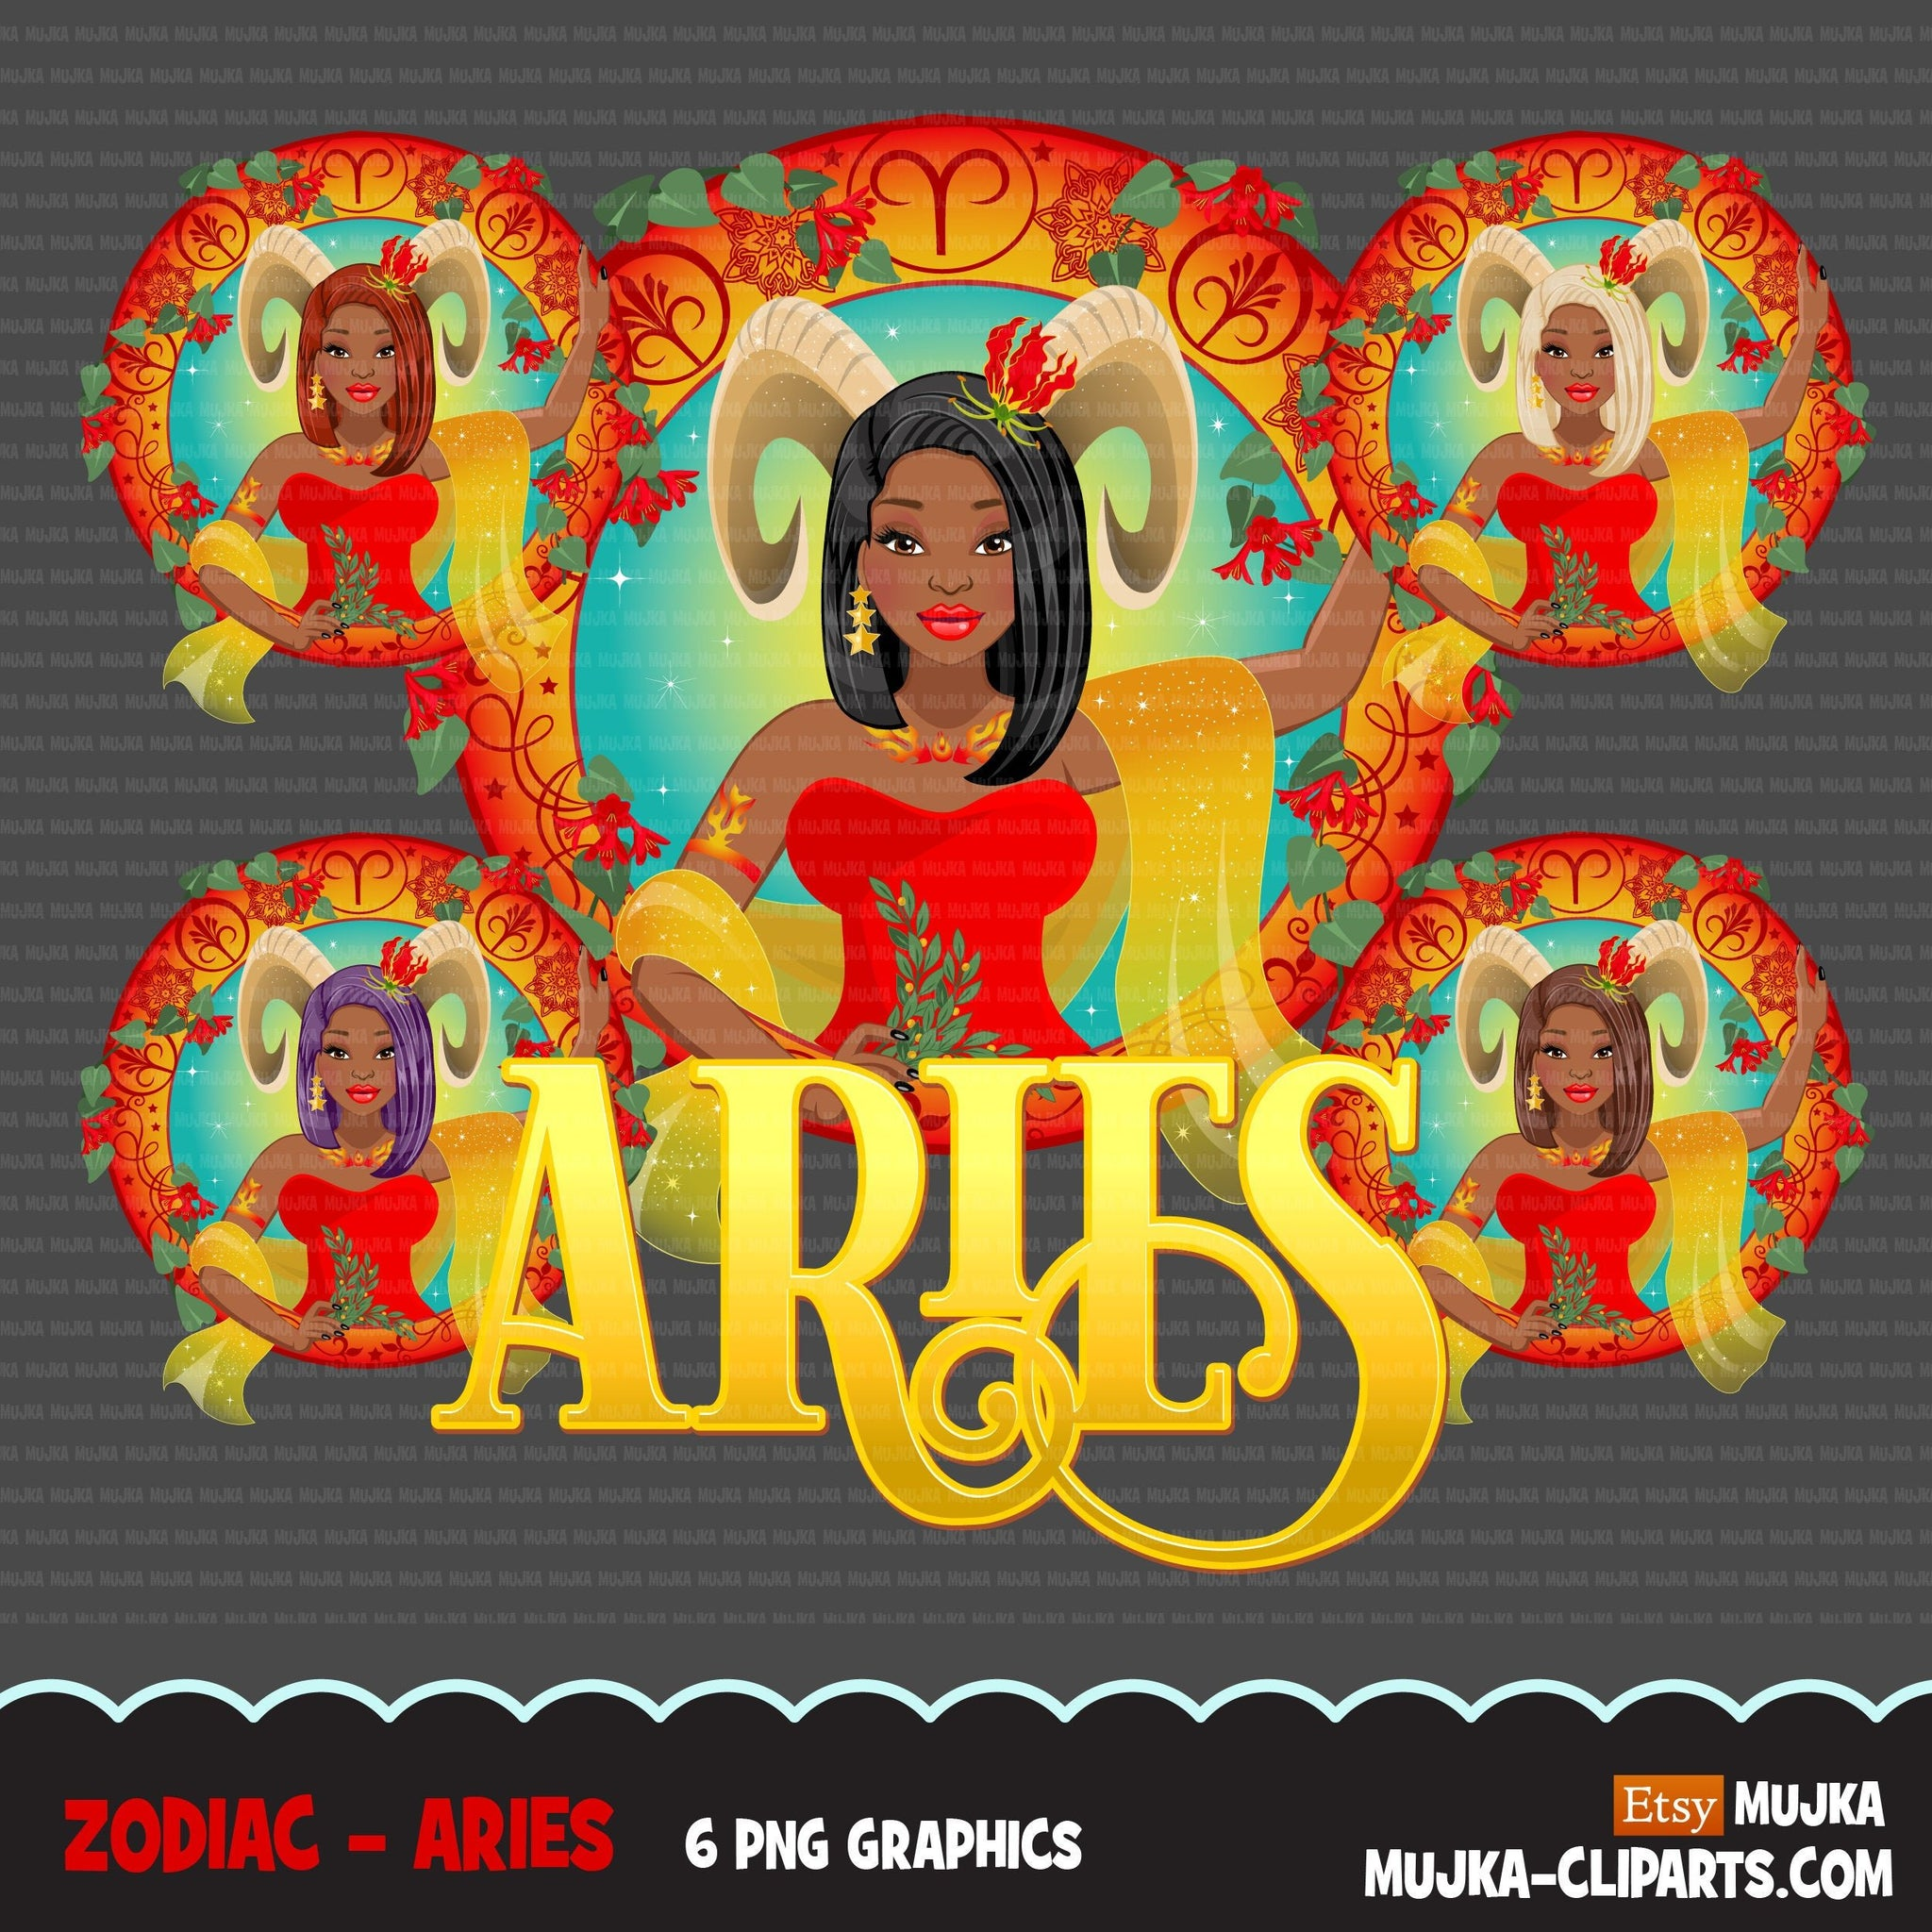 Zodiac Aries Clipart, Png digital download, Sublimation Graphics for Cricut & Cameo, Black Long hair Woman Horoscope sign designs